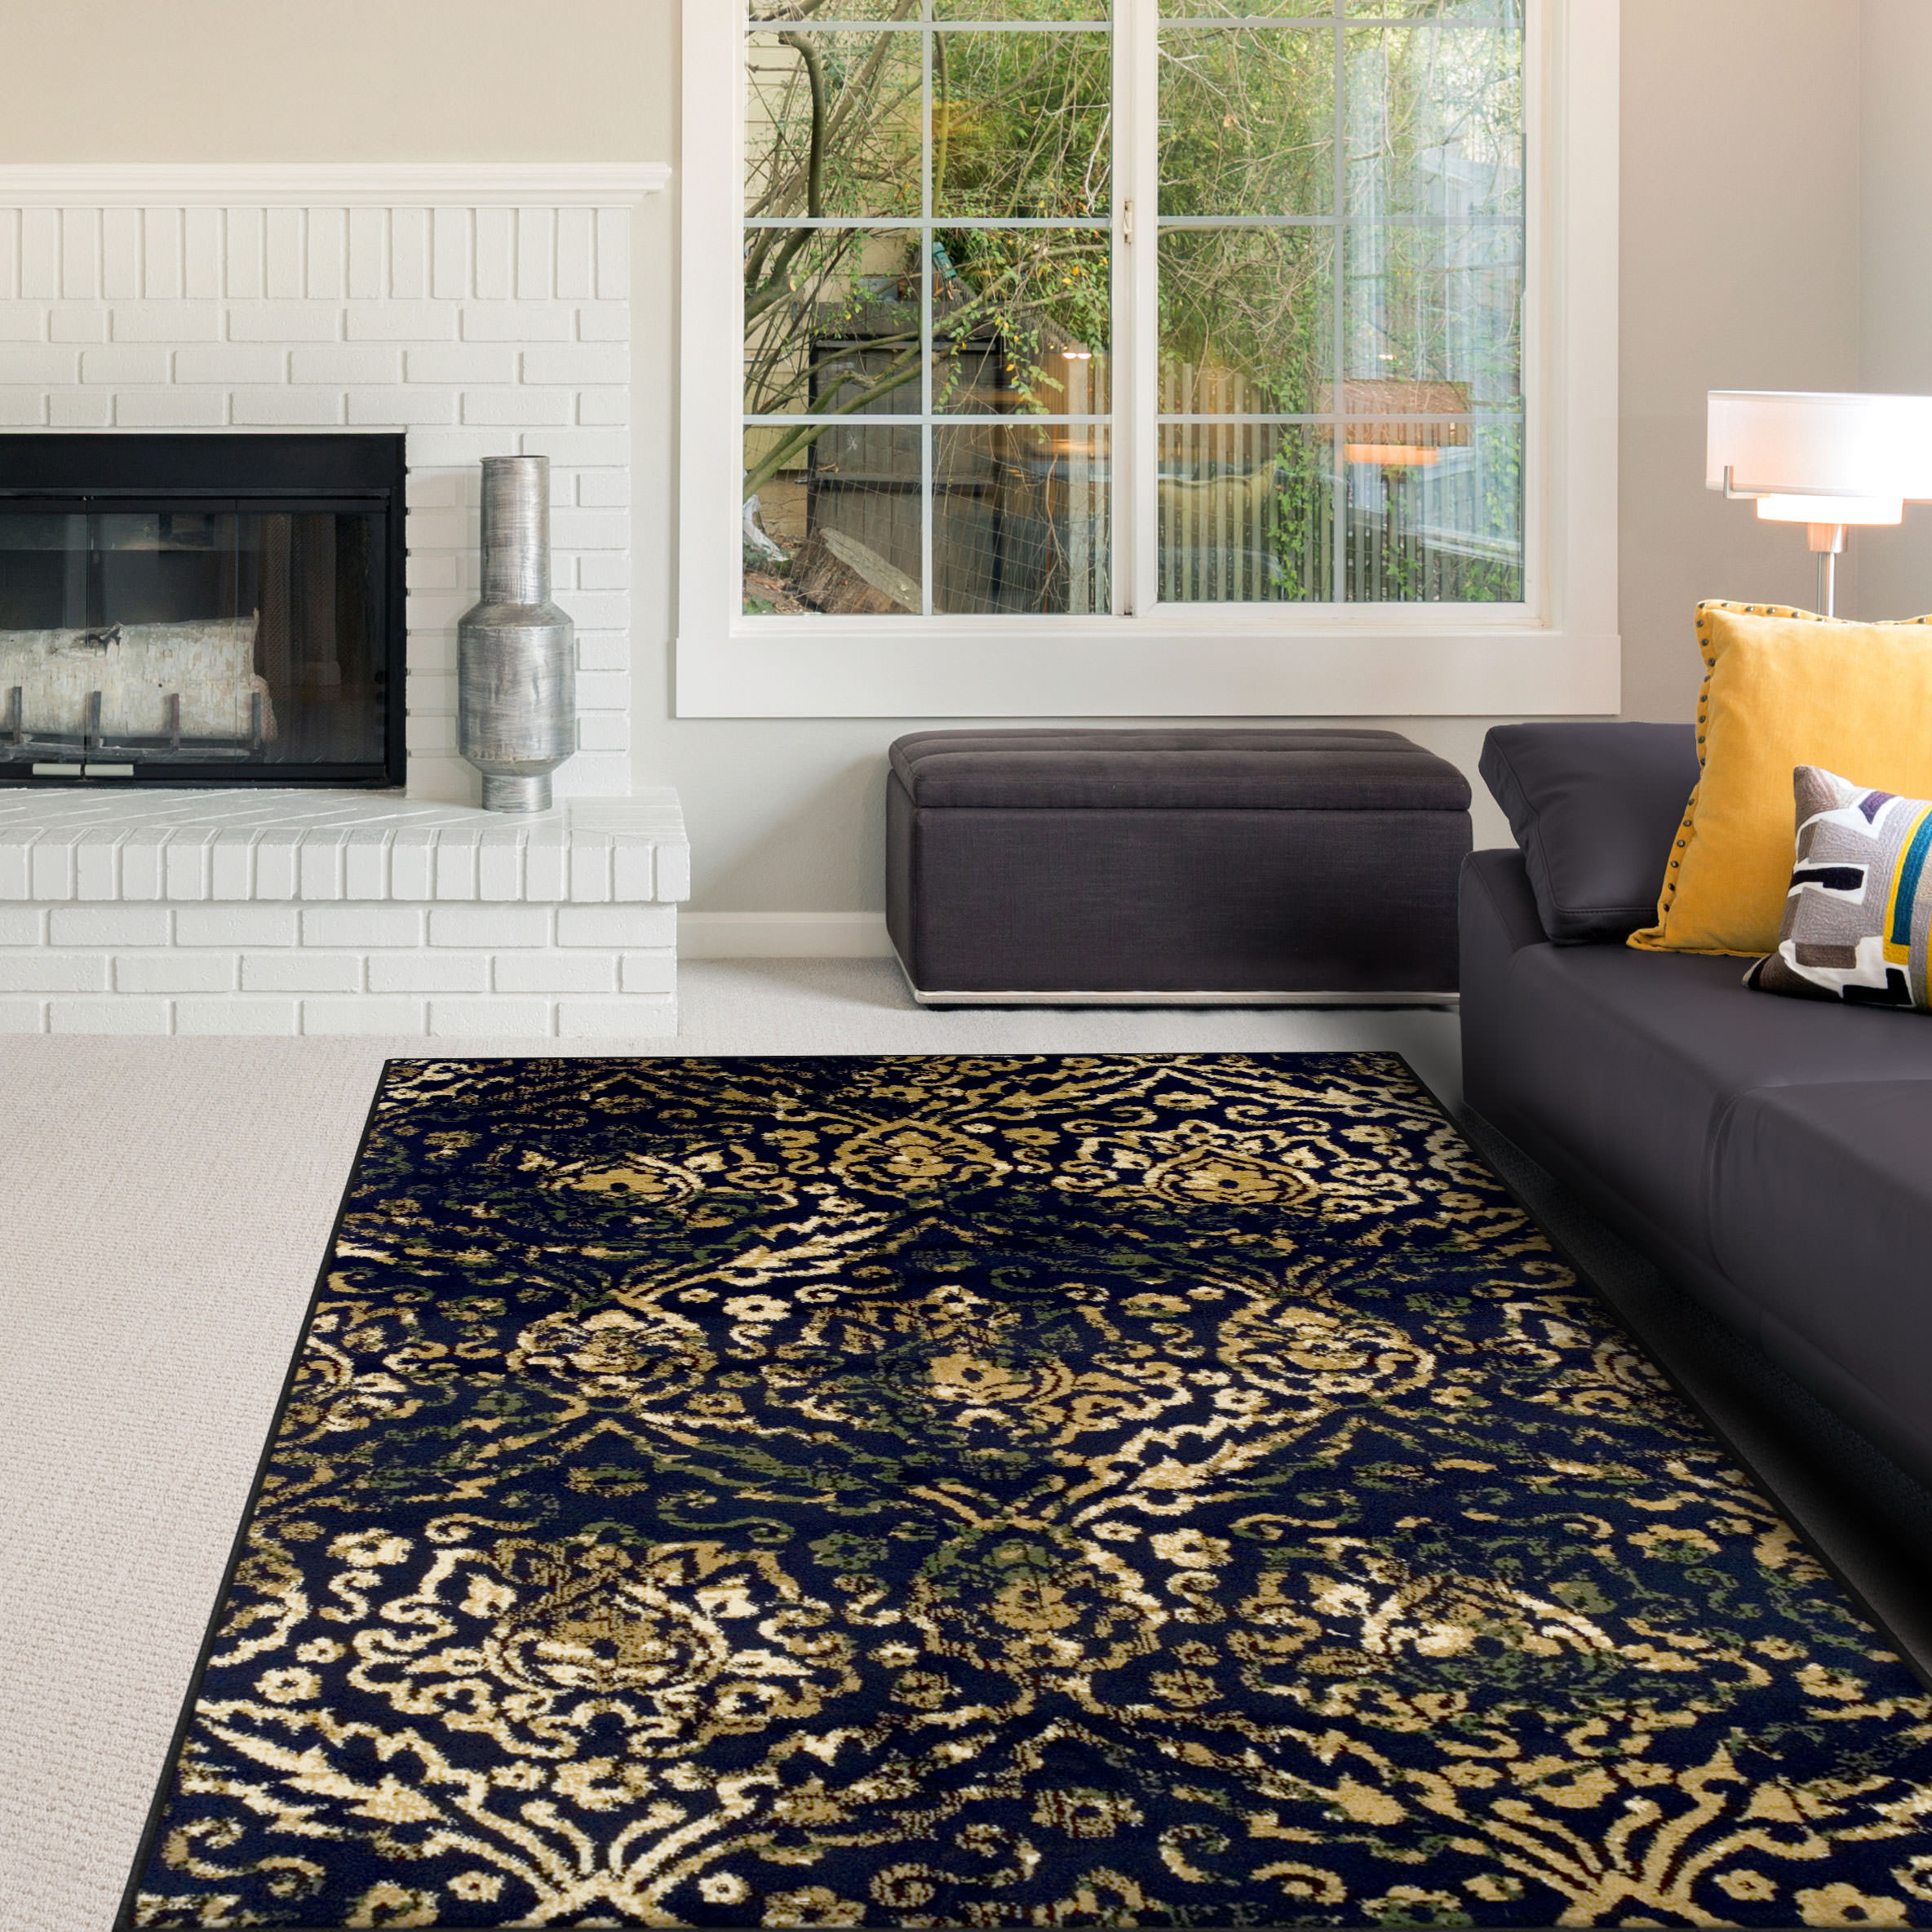 Superior Vintage Ikat Damask Pattern, 10mm Pile with Jute Backing, Moisture Resistant, Affordable Contemporary Northman Collection Area Rug